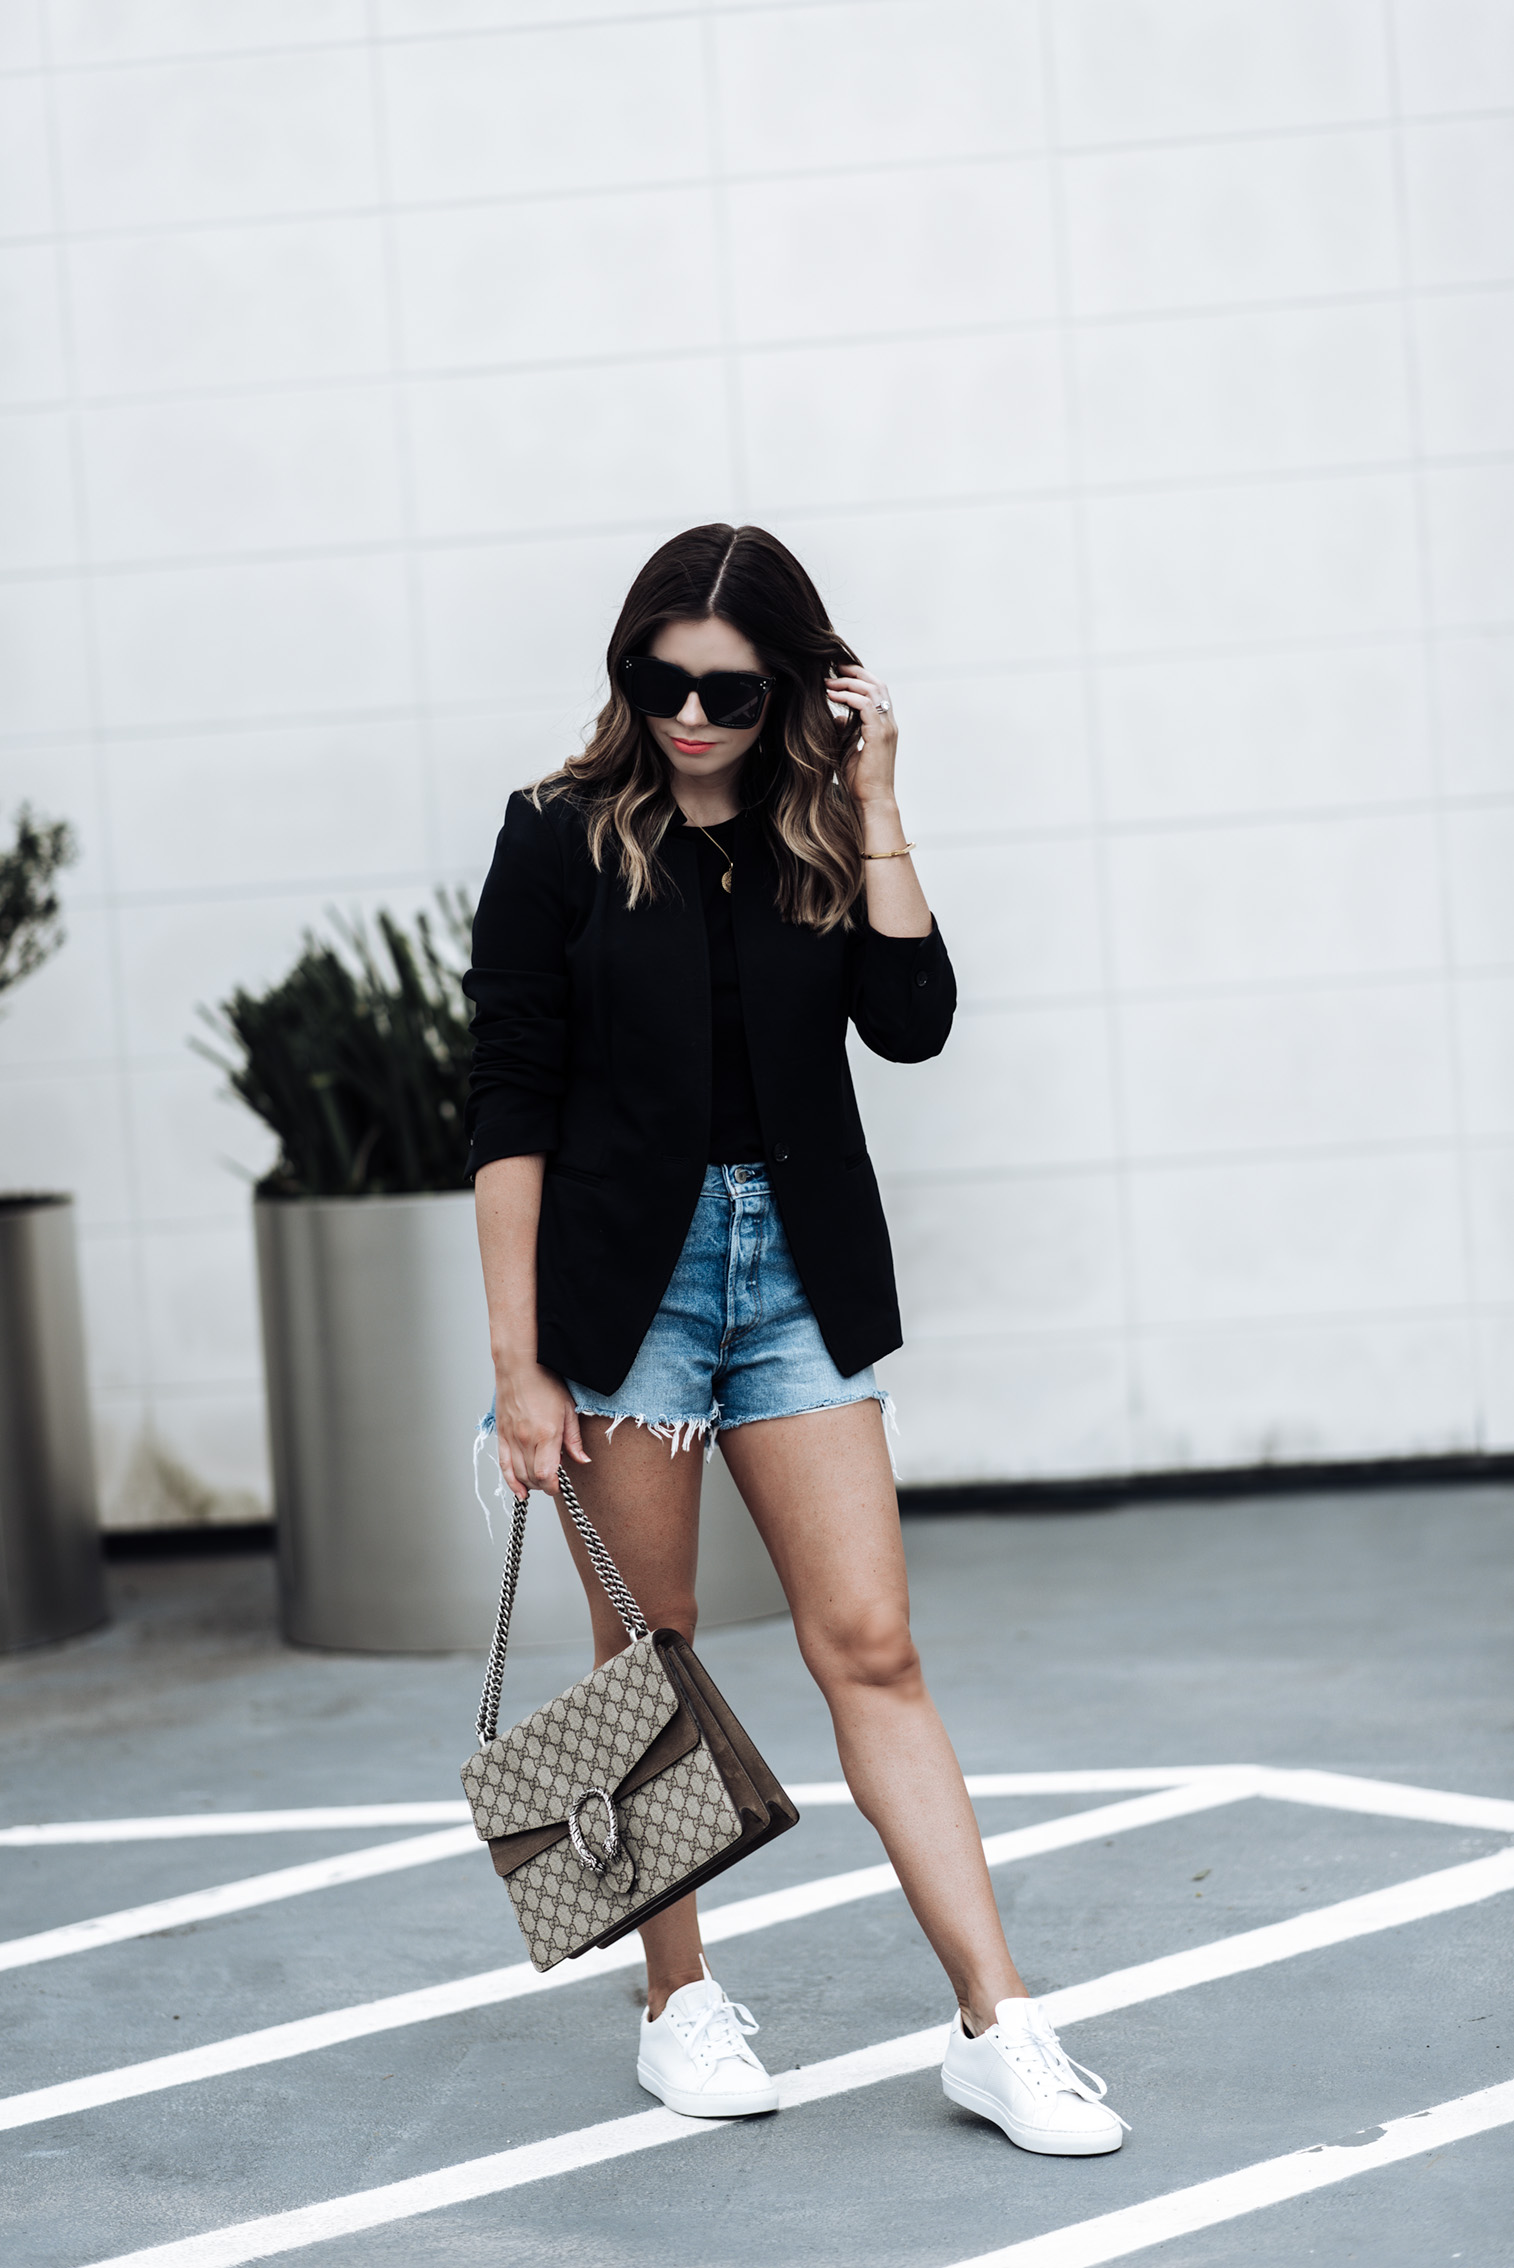 Tiffany Jais Houston fashion and lifestyle blogger | Fall must have pieces with Banana Republic, click to shop the look | Sneaker fashion, Longline Blazer | Basic Black Tee | Greats sneakers | Gucci Dionysus bag | Parker Distressed Denim Shorts | Marie Pendant